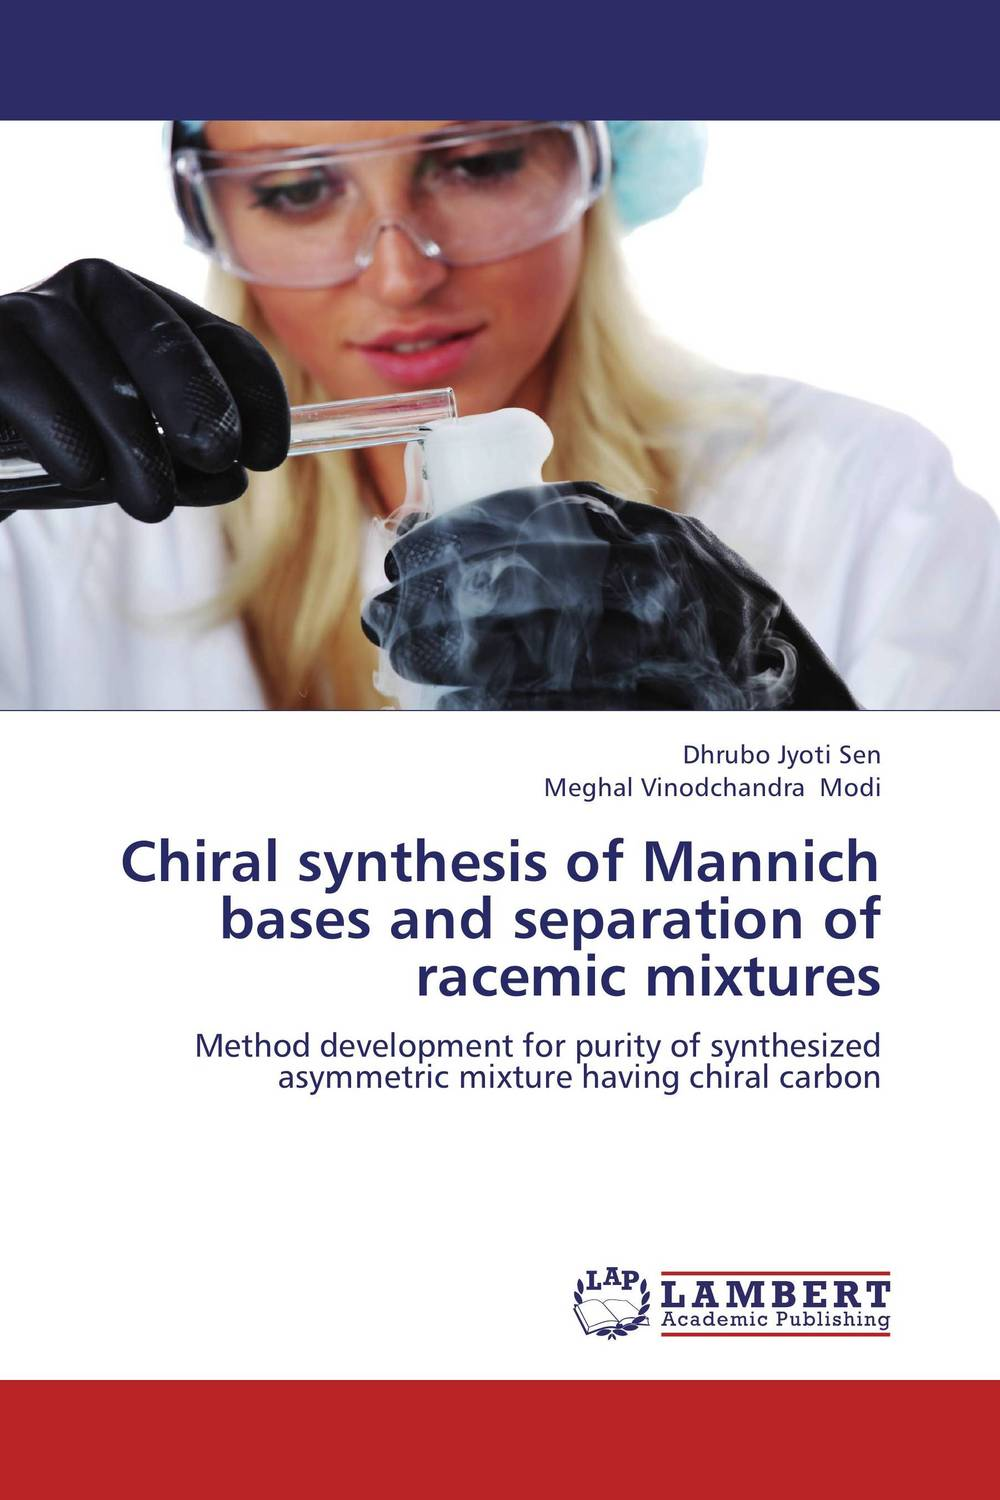 Chiral synthesis of Mannich bases and separation of racemic mixtures dr david m mburu prof mary w ndungu and prof ahmed hassanali virulence and repellency of fungi on macrotermes and mediating signals